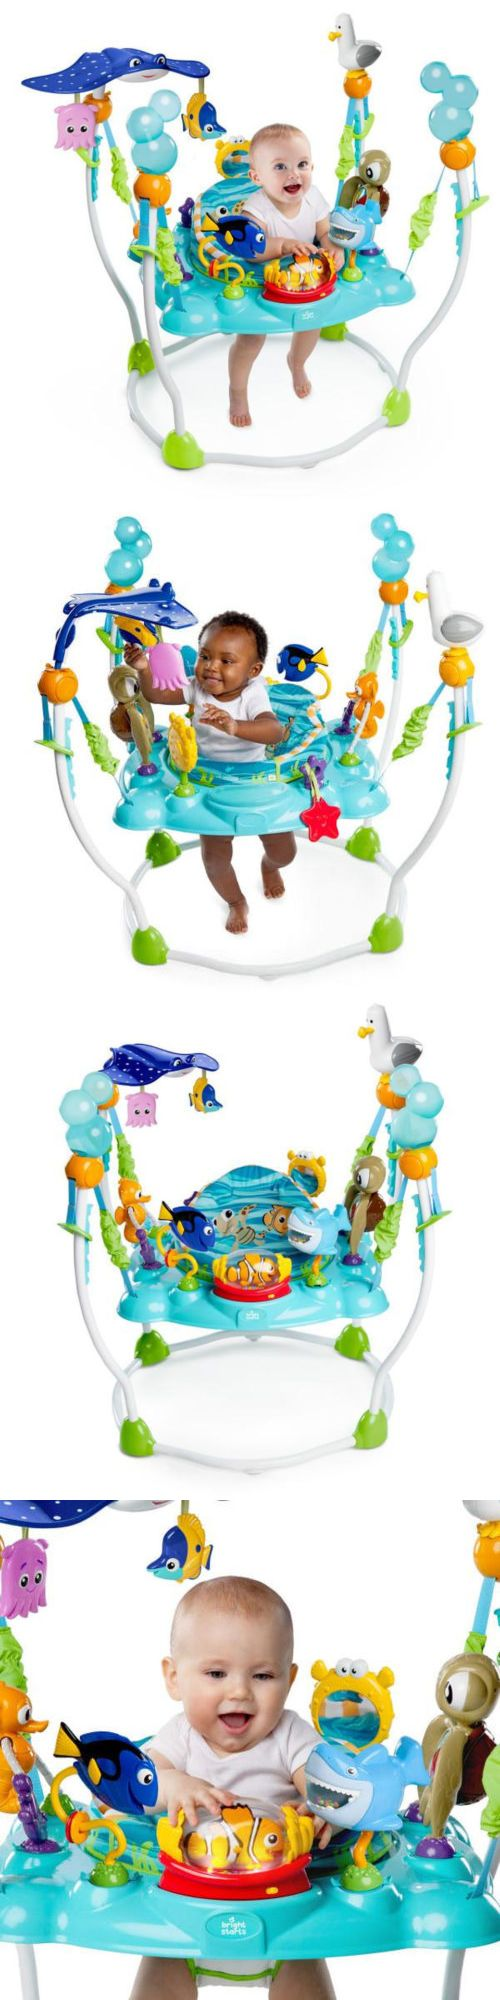 baby and kid stuff: Finding Nemo Sea Baby Bouncer Jumper Disney Seat Toy Infant Activity -> BUY IT NOW ONLY: $145.99 on eBay!